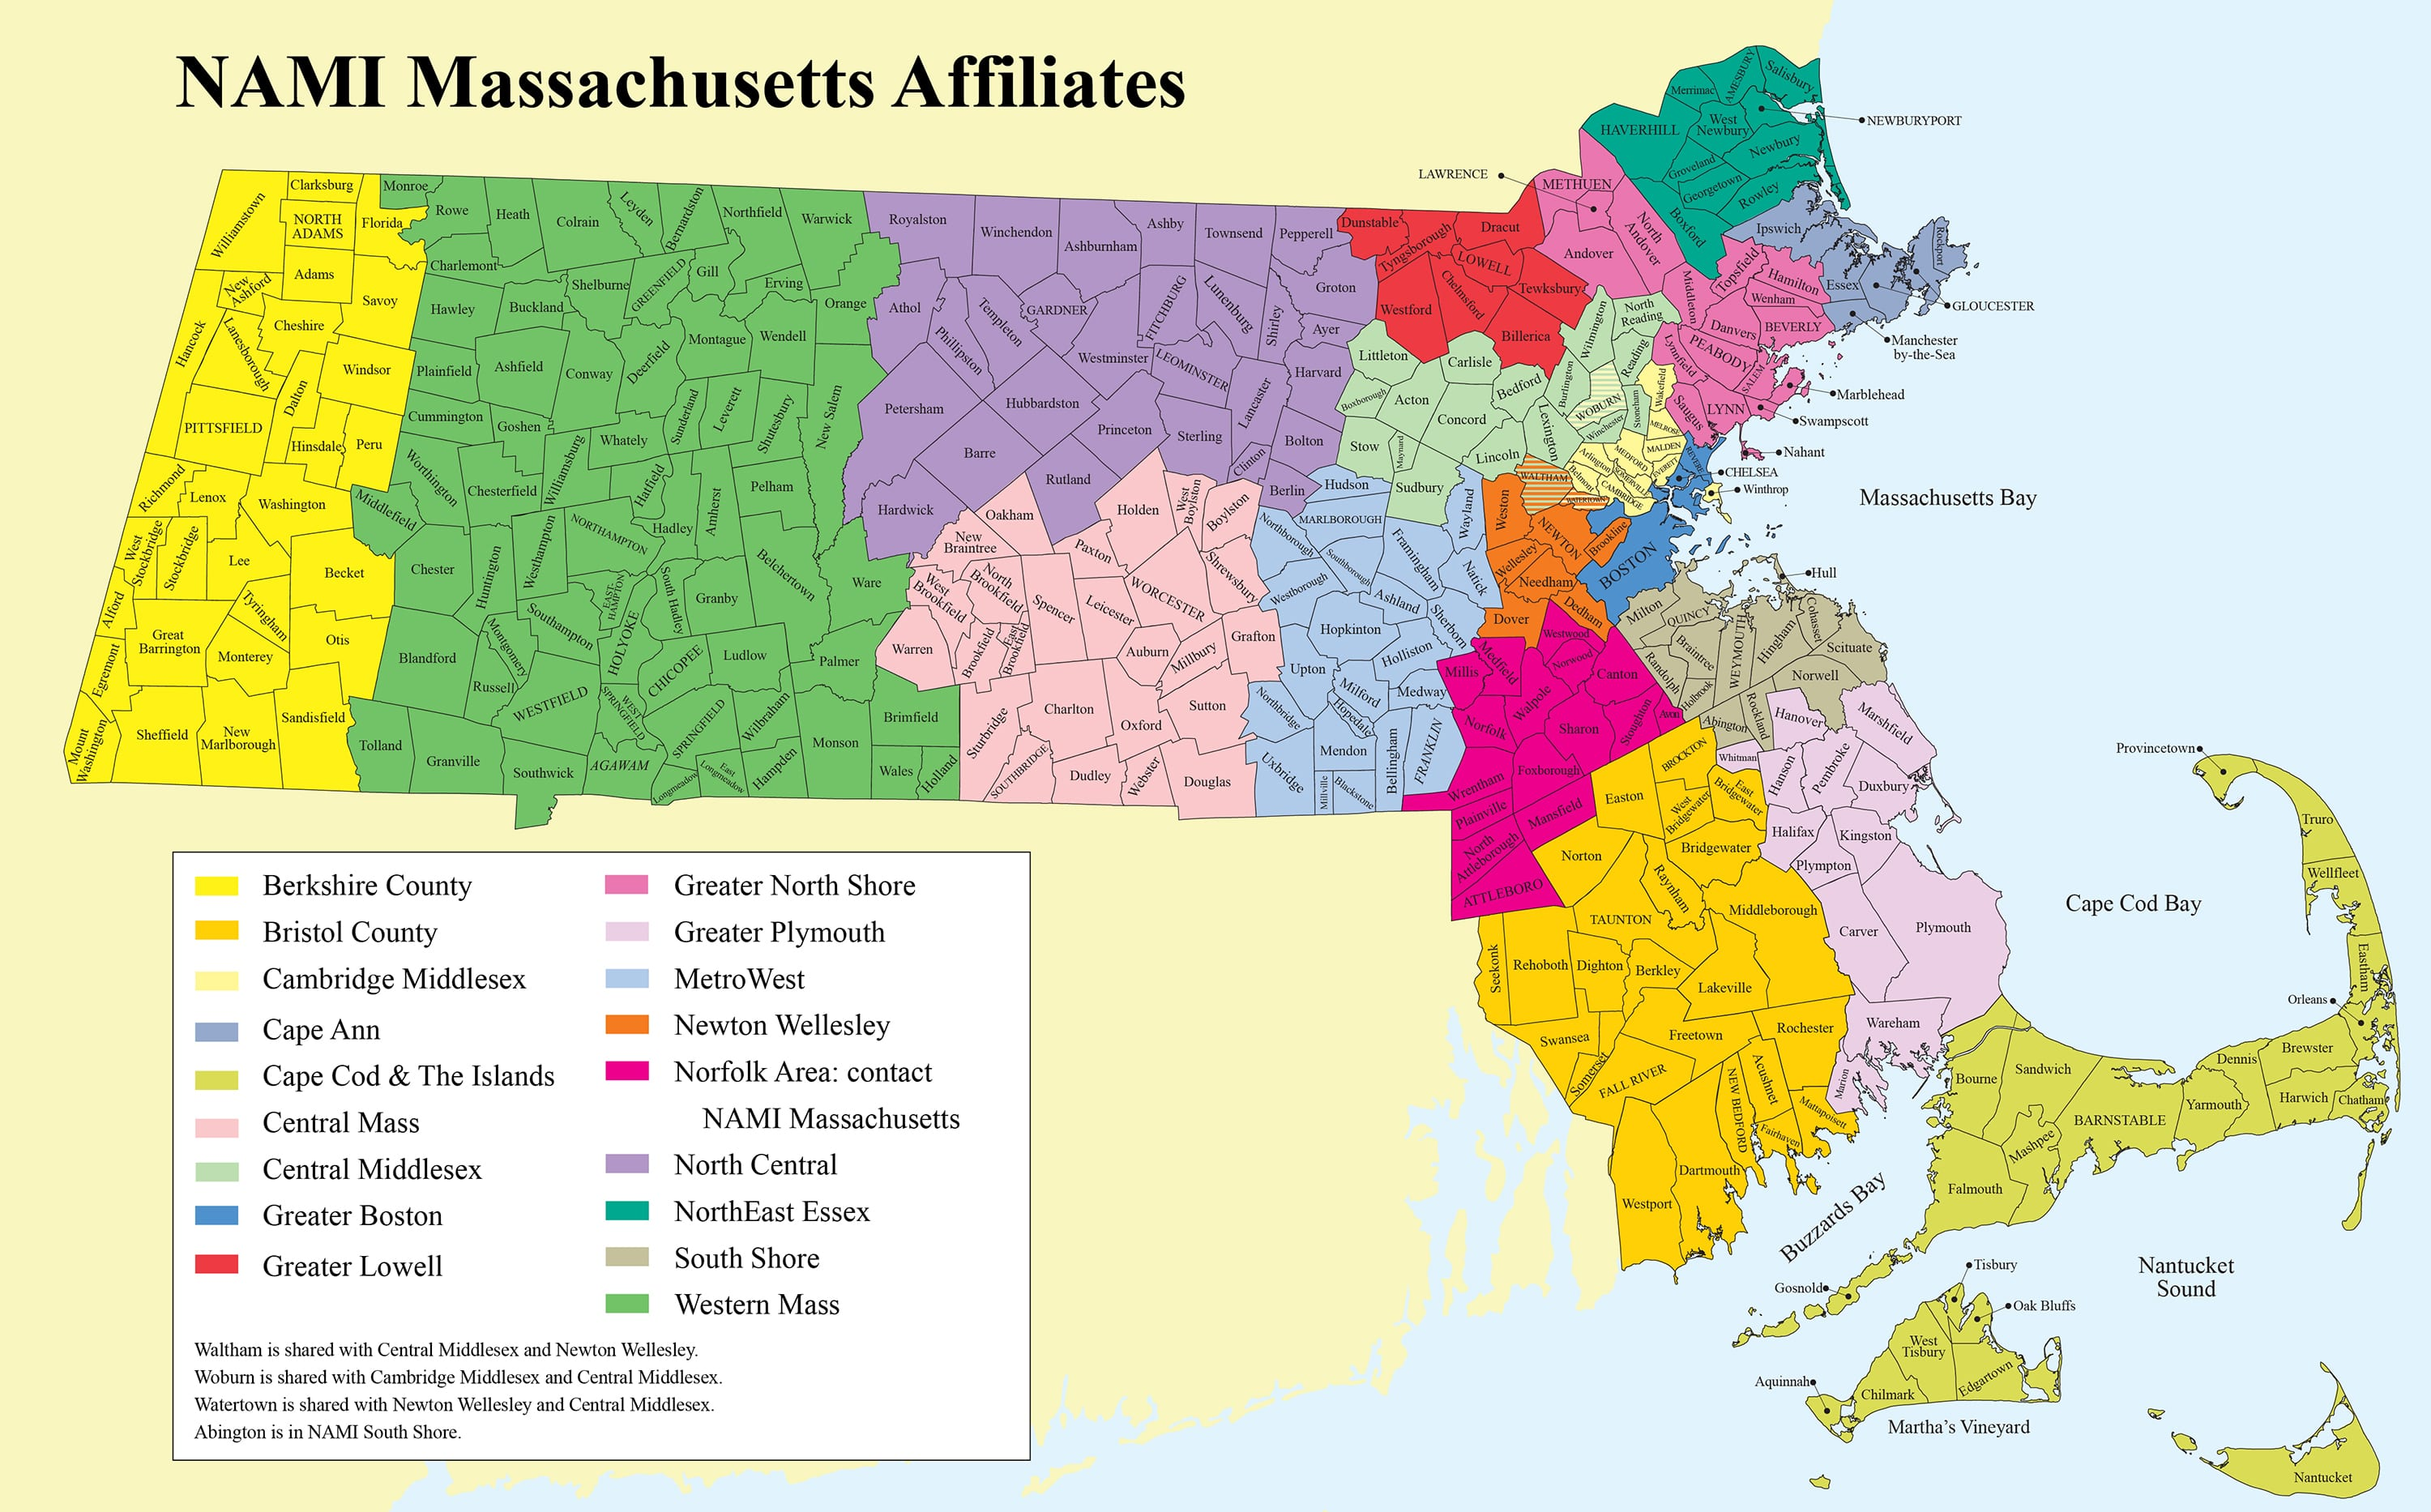 map of NAMI Mass affiliates